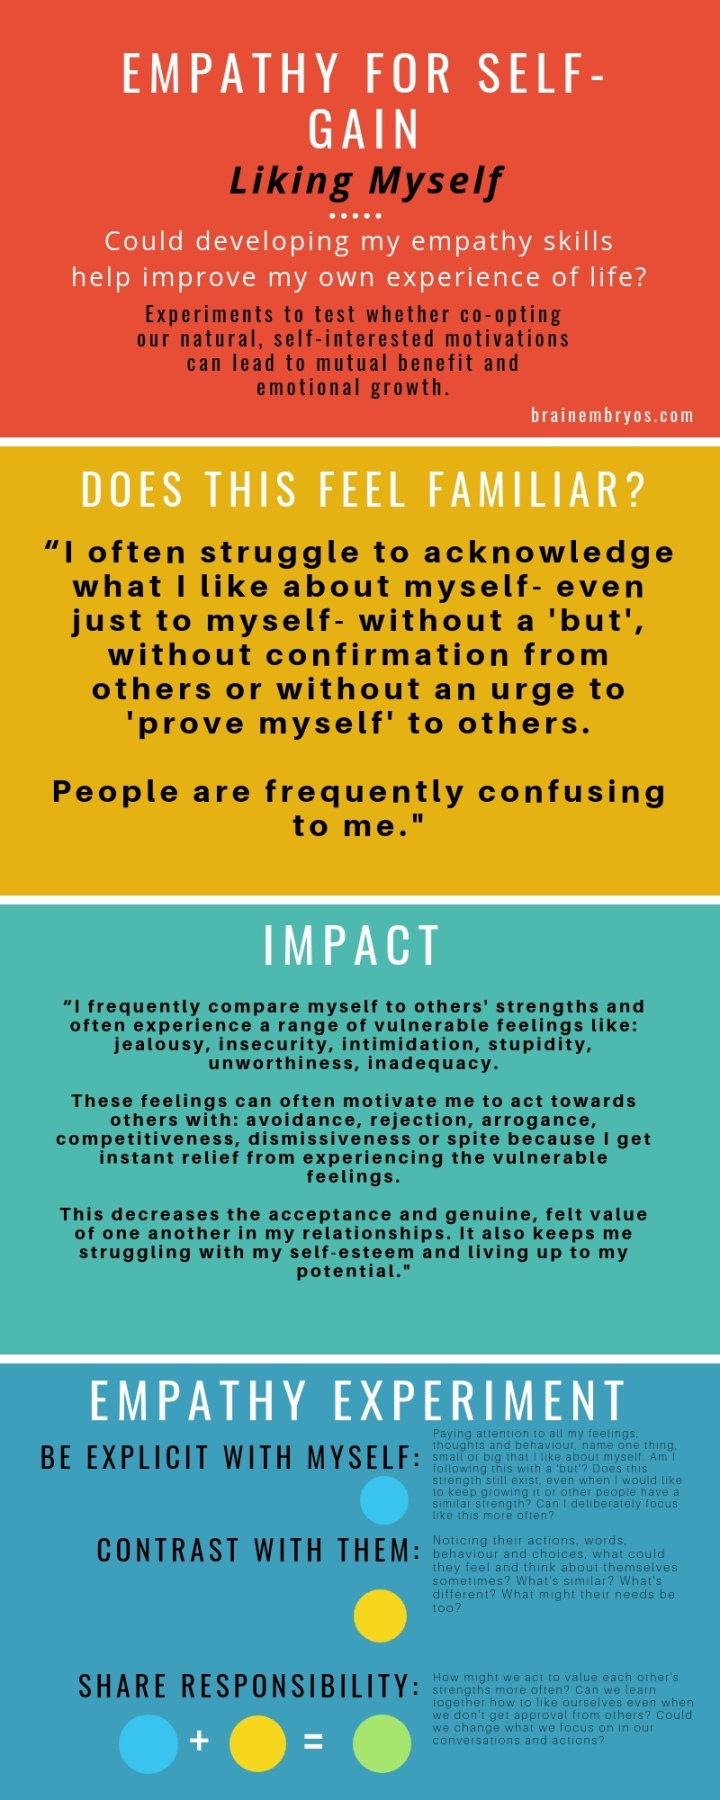 """I often struggle to acknowledge what I like about myself- even just to myself- without a 'but', without confirmation from others or without an urge to 'prove myself' to others. People are frequently confusing to me."" ""I frequently compare myself to others' strengths and often experience a range of vulnerable feelings like: jealousy, insecurity, intimidation, stupidity, unworthiness, inadequacy. These feelings can often motivate me to act towards others with: avoidance, rejection, arrogance, competitiveness, dismissiveness or spite because I get instant relief from experiencing the vulnerable feelings. This decreases the acceptance and genuine, felt value of one another in my relationships. It also keeps me struggling with my self-esteem and living up to my potential."" Paying attention to all my feelings, thoughts and behaviour, name one thing, small or big that I like about myself. Am I following this with a 'but'? Does this strength still exist, even when I would like to keep growing it or other people have a similar strength? Can I deliberately focus like this more often? Noticing their actions, words, behaviour and choices, what could they feel and think about themselves sometimes? What's similar? What's different? What might their needs be too? How might we act to value each other's strengths more often? Can we learn together how to like ourselves even when we don't get approval from others? Could we change what we focus on in our conversations and actions?"